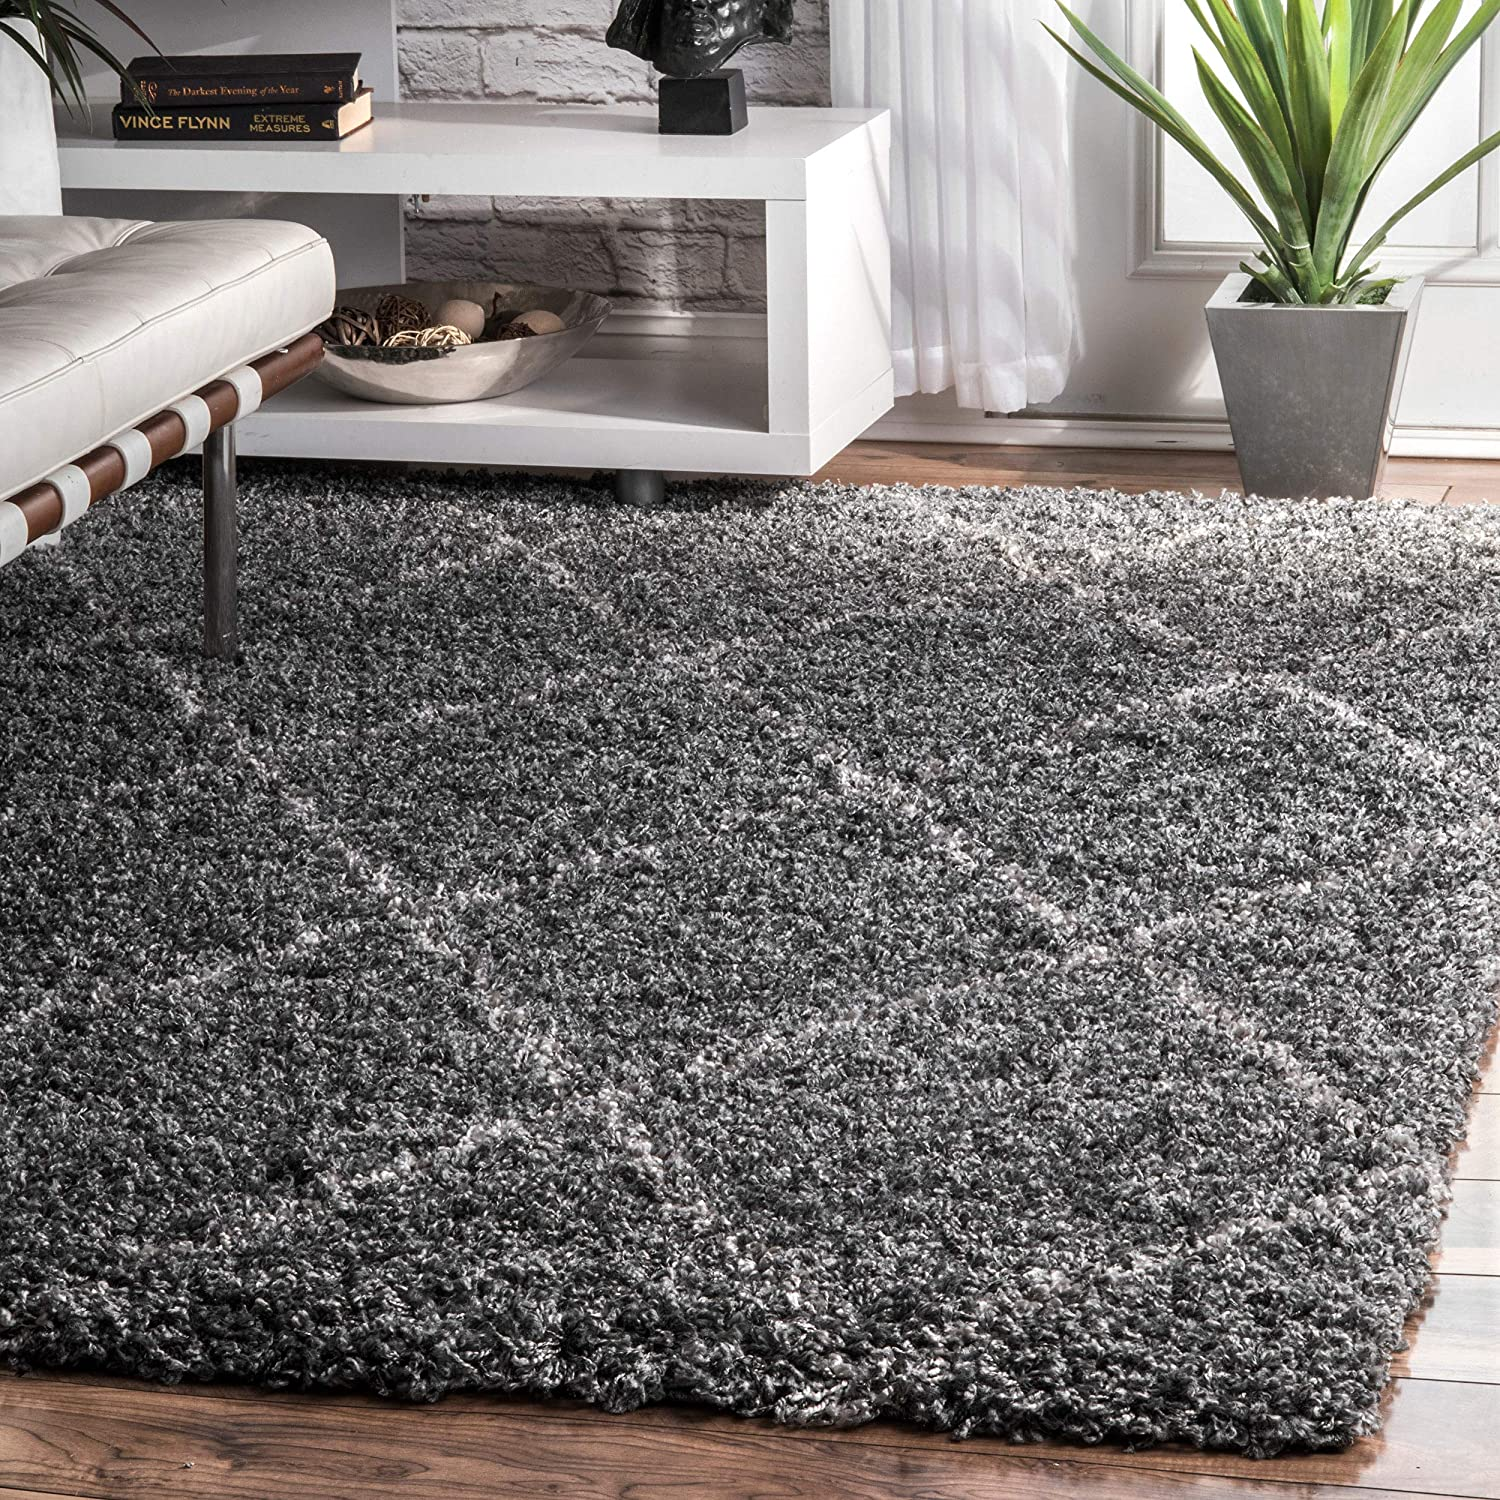 nuLOOM Cozy Soft and Plush Diamond Trellis Shag Area Rug, Grey, 4' x 6' 4' x 6' 200OZEZ04B